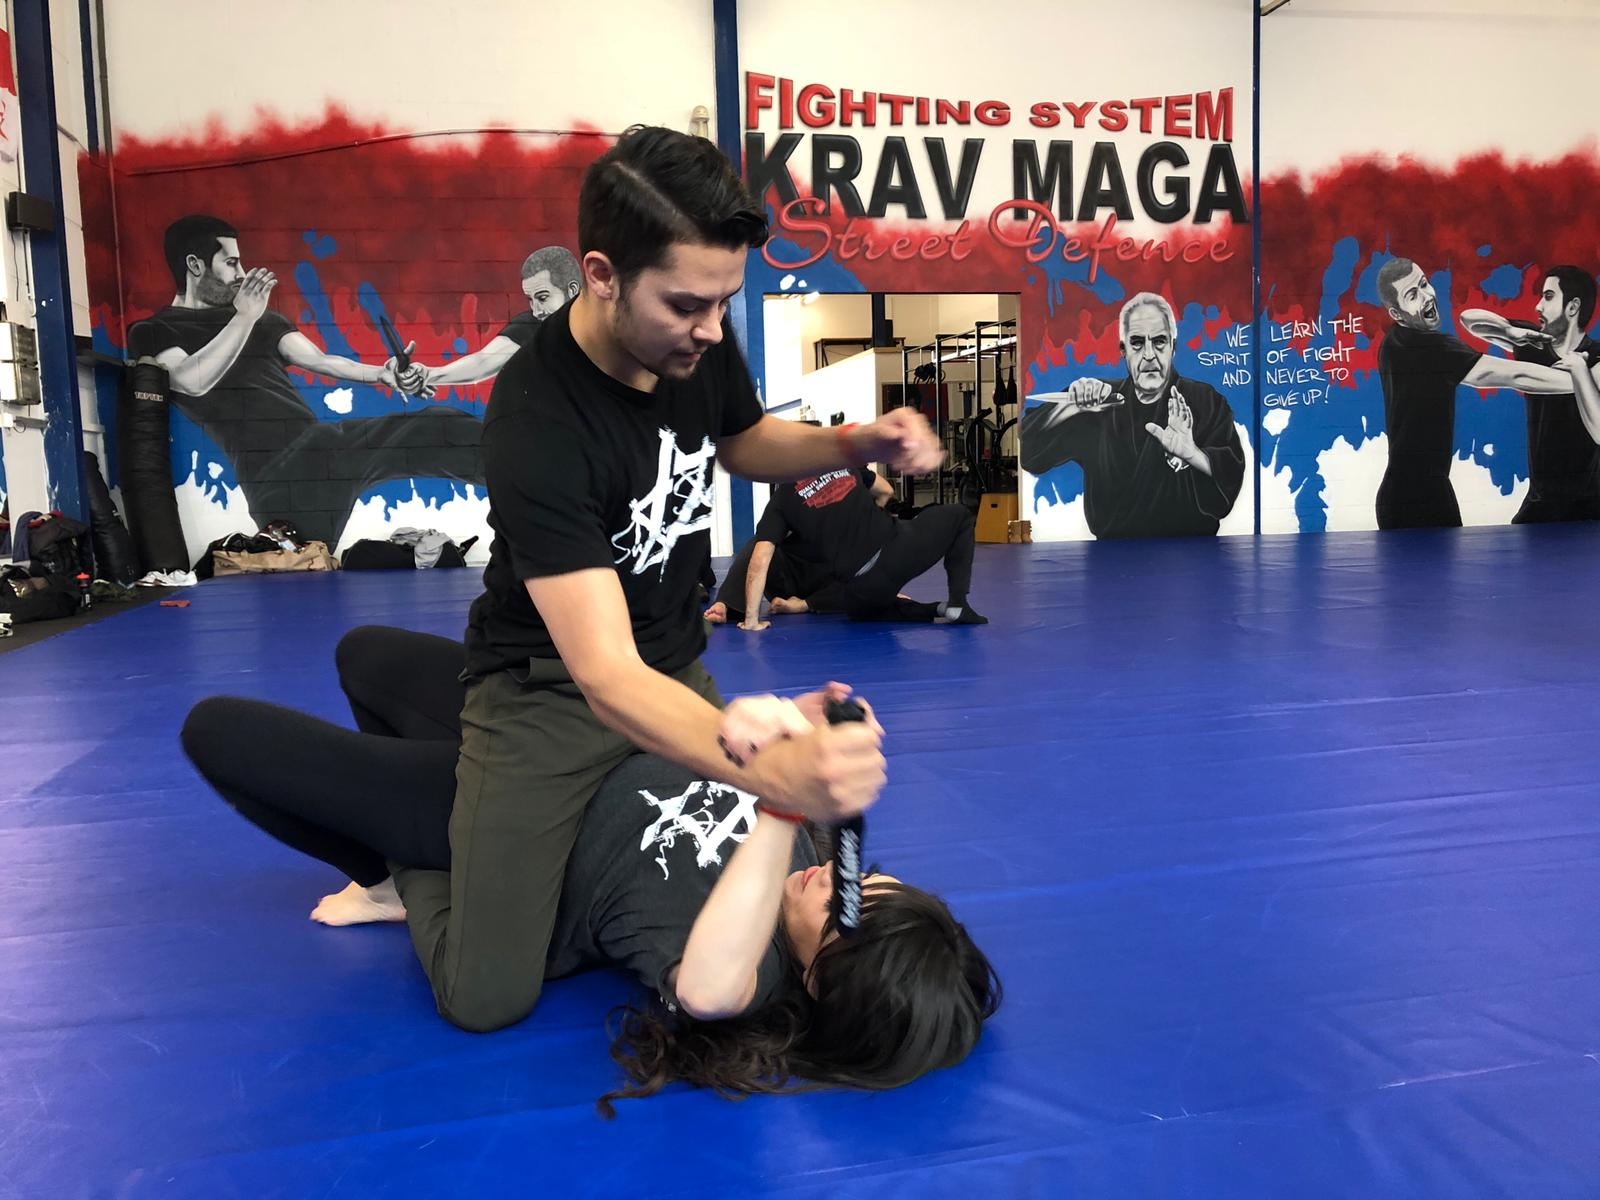 Chief Instructor of Shaan Saar Gabriel Mora and Co-Owner, Instructor Reneé Rose